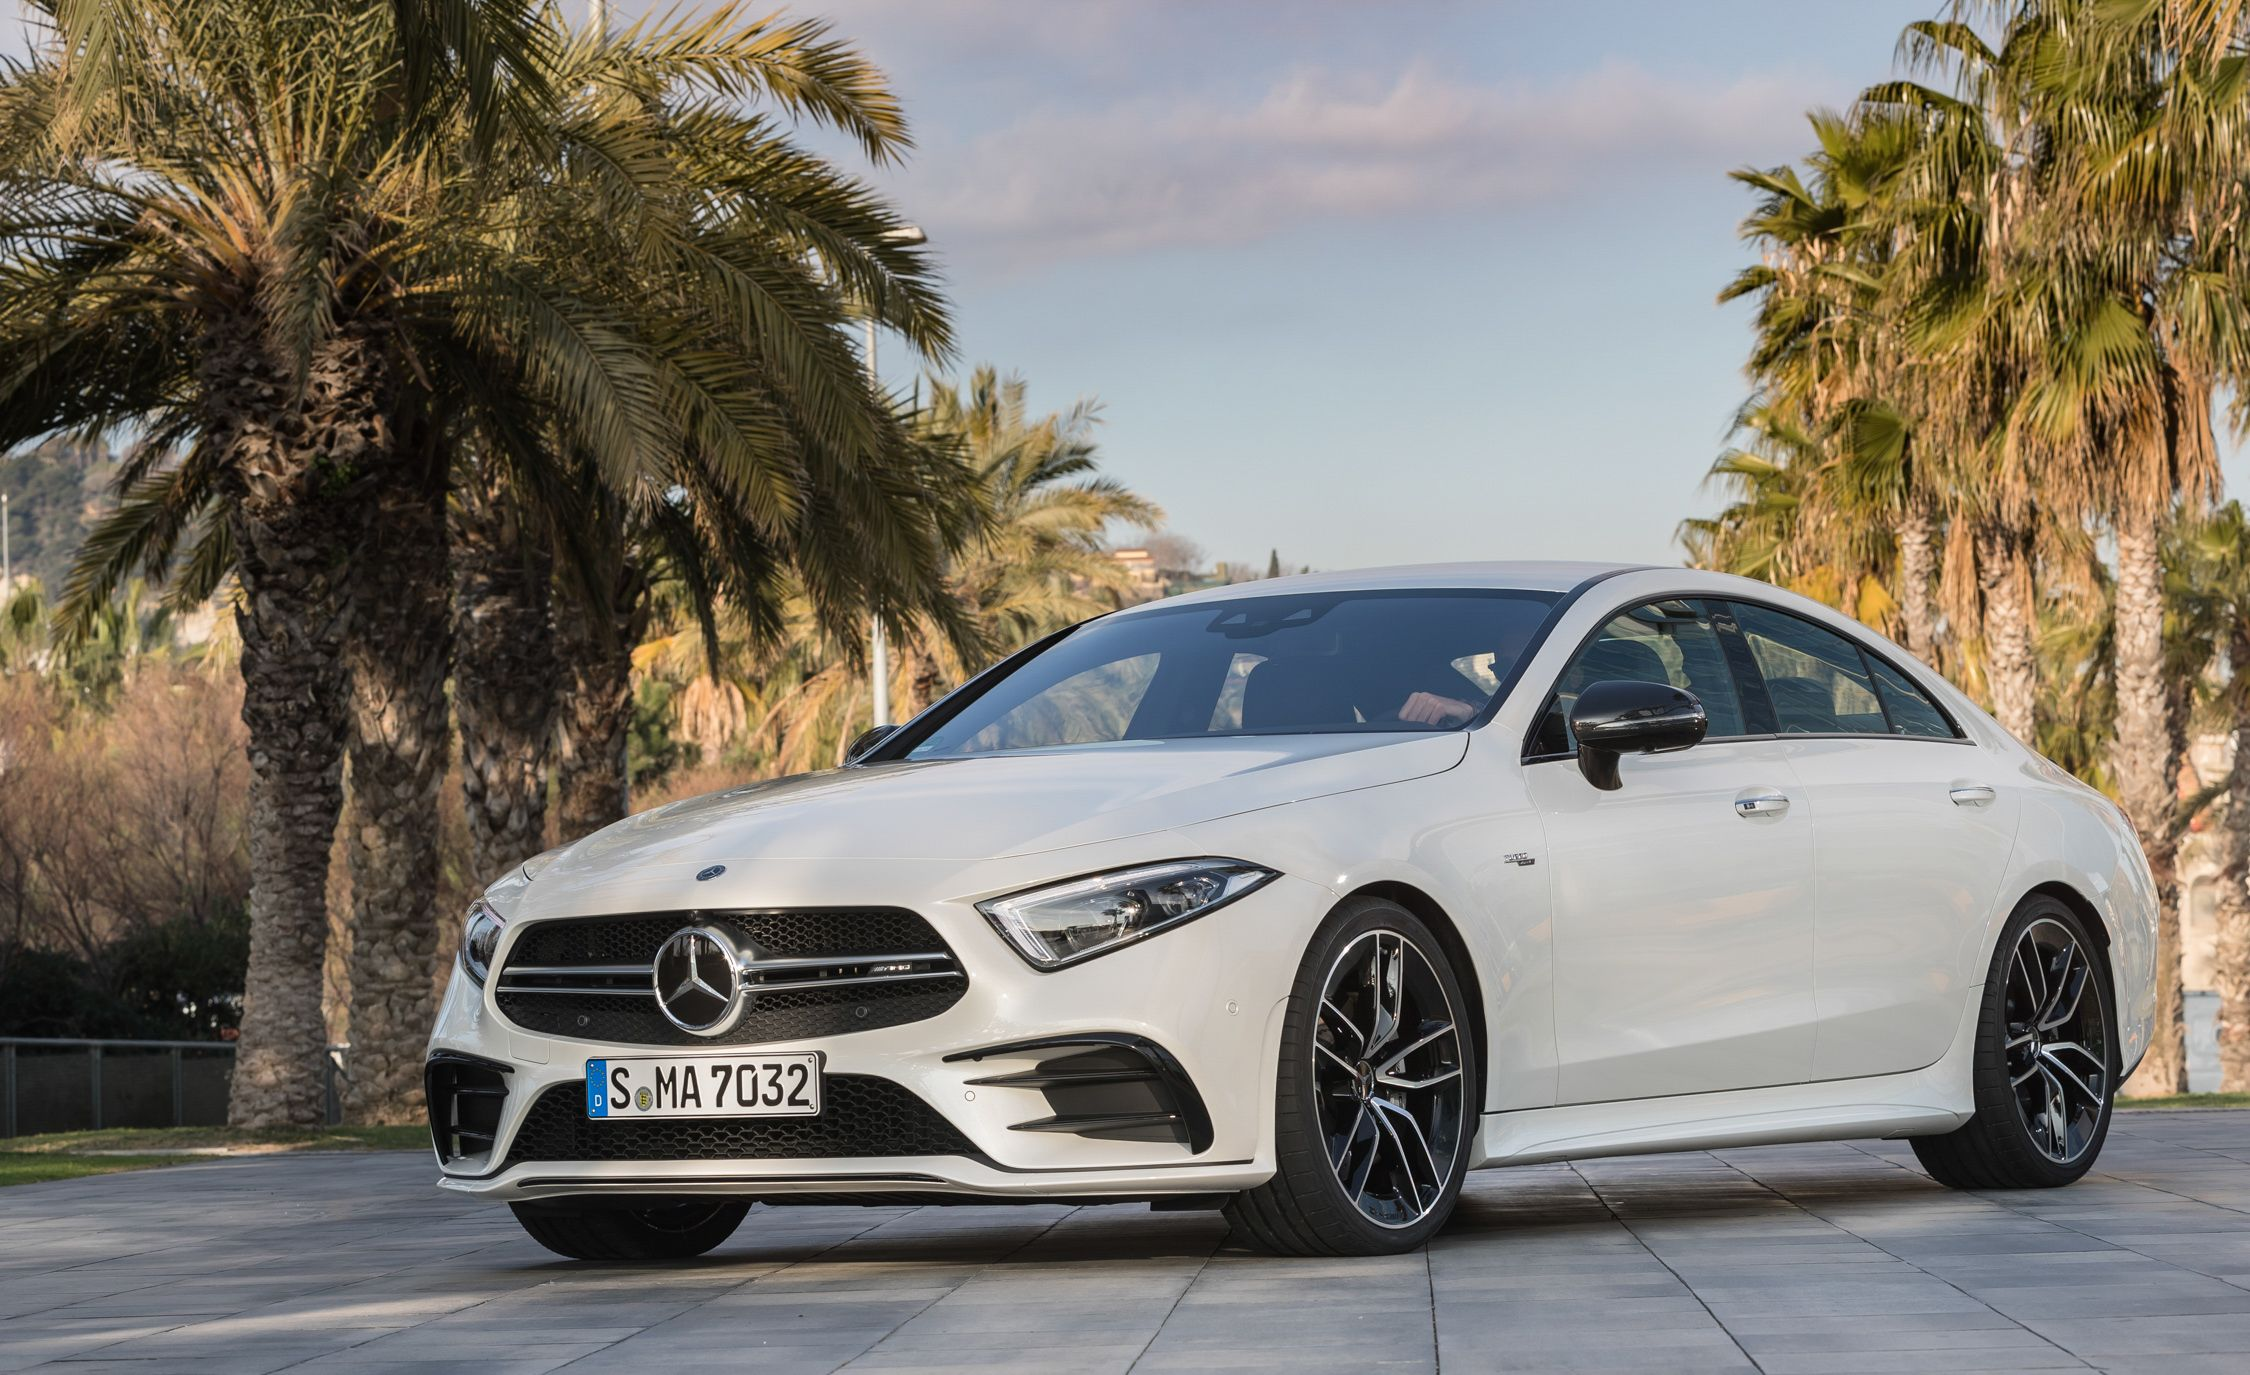 2019 Mercedes Benz Cls Cl Reviews Price Photos And Specs Car Driver